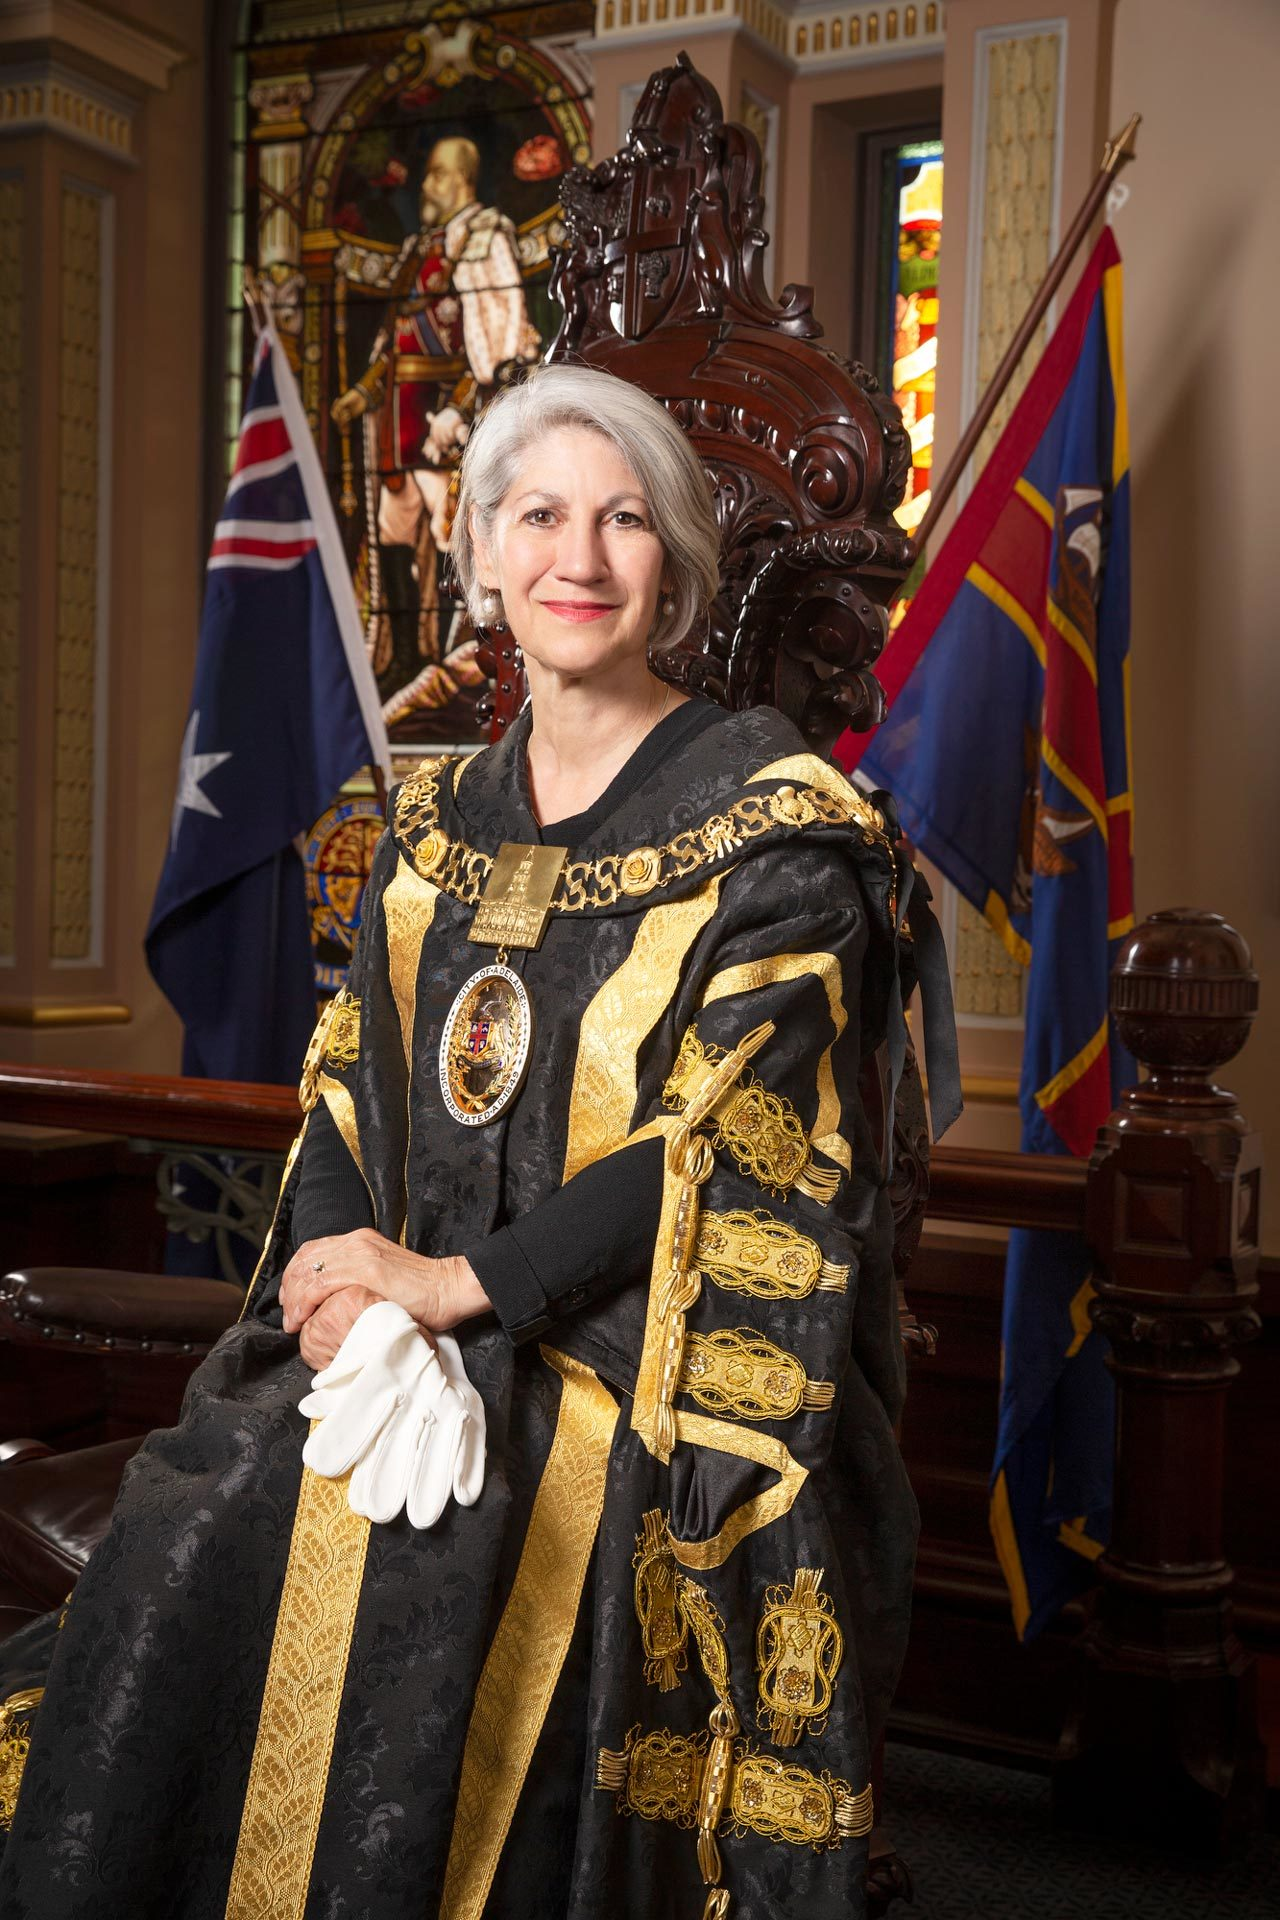 Lord Mayor Sandy Verschoor